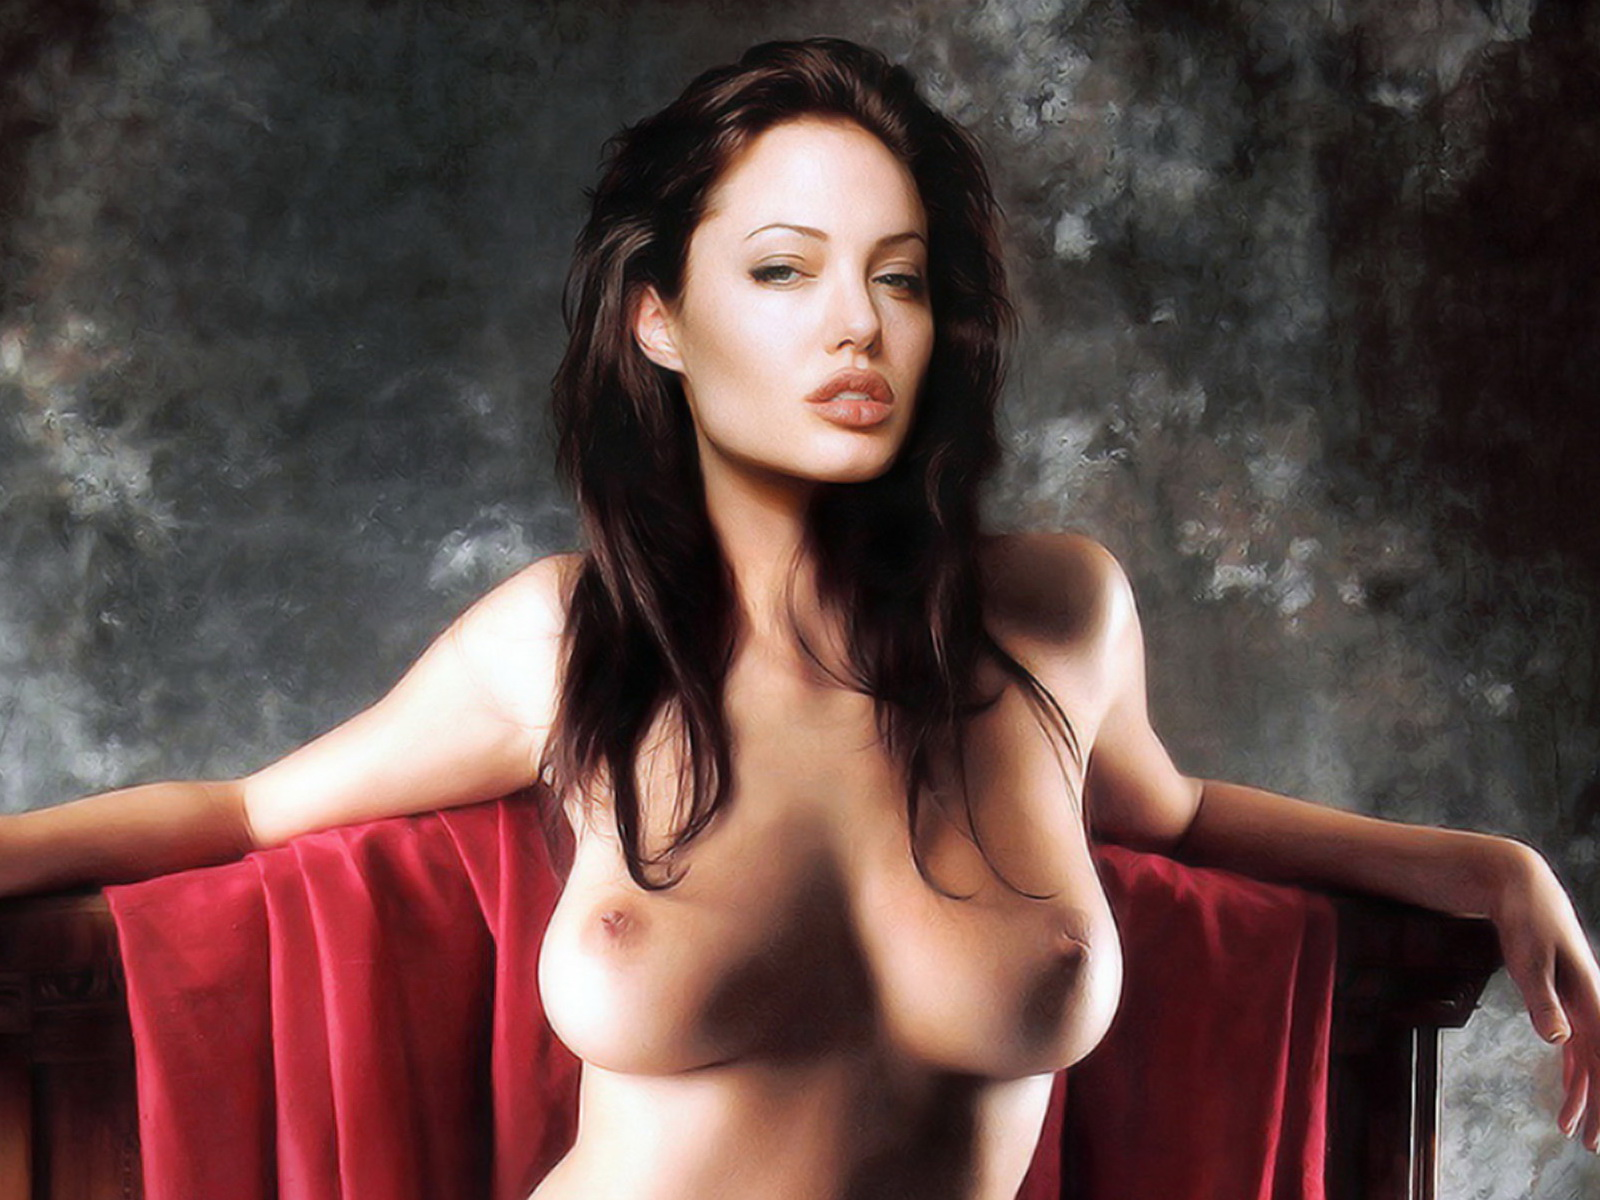 Angelina jolie sex scene tomb raider porncraft busty girlfriends